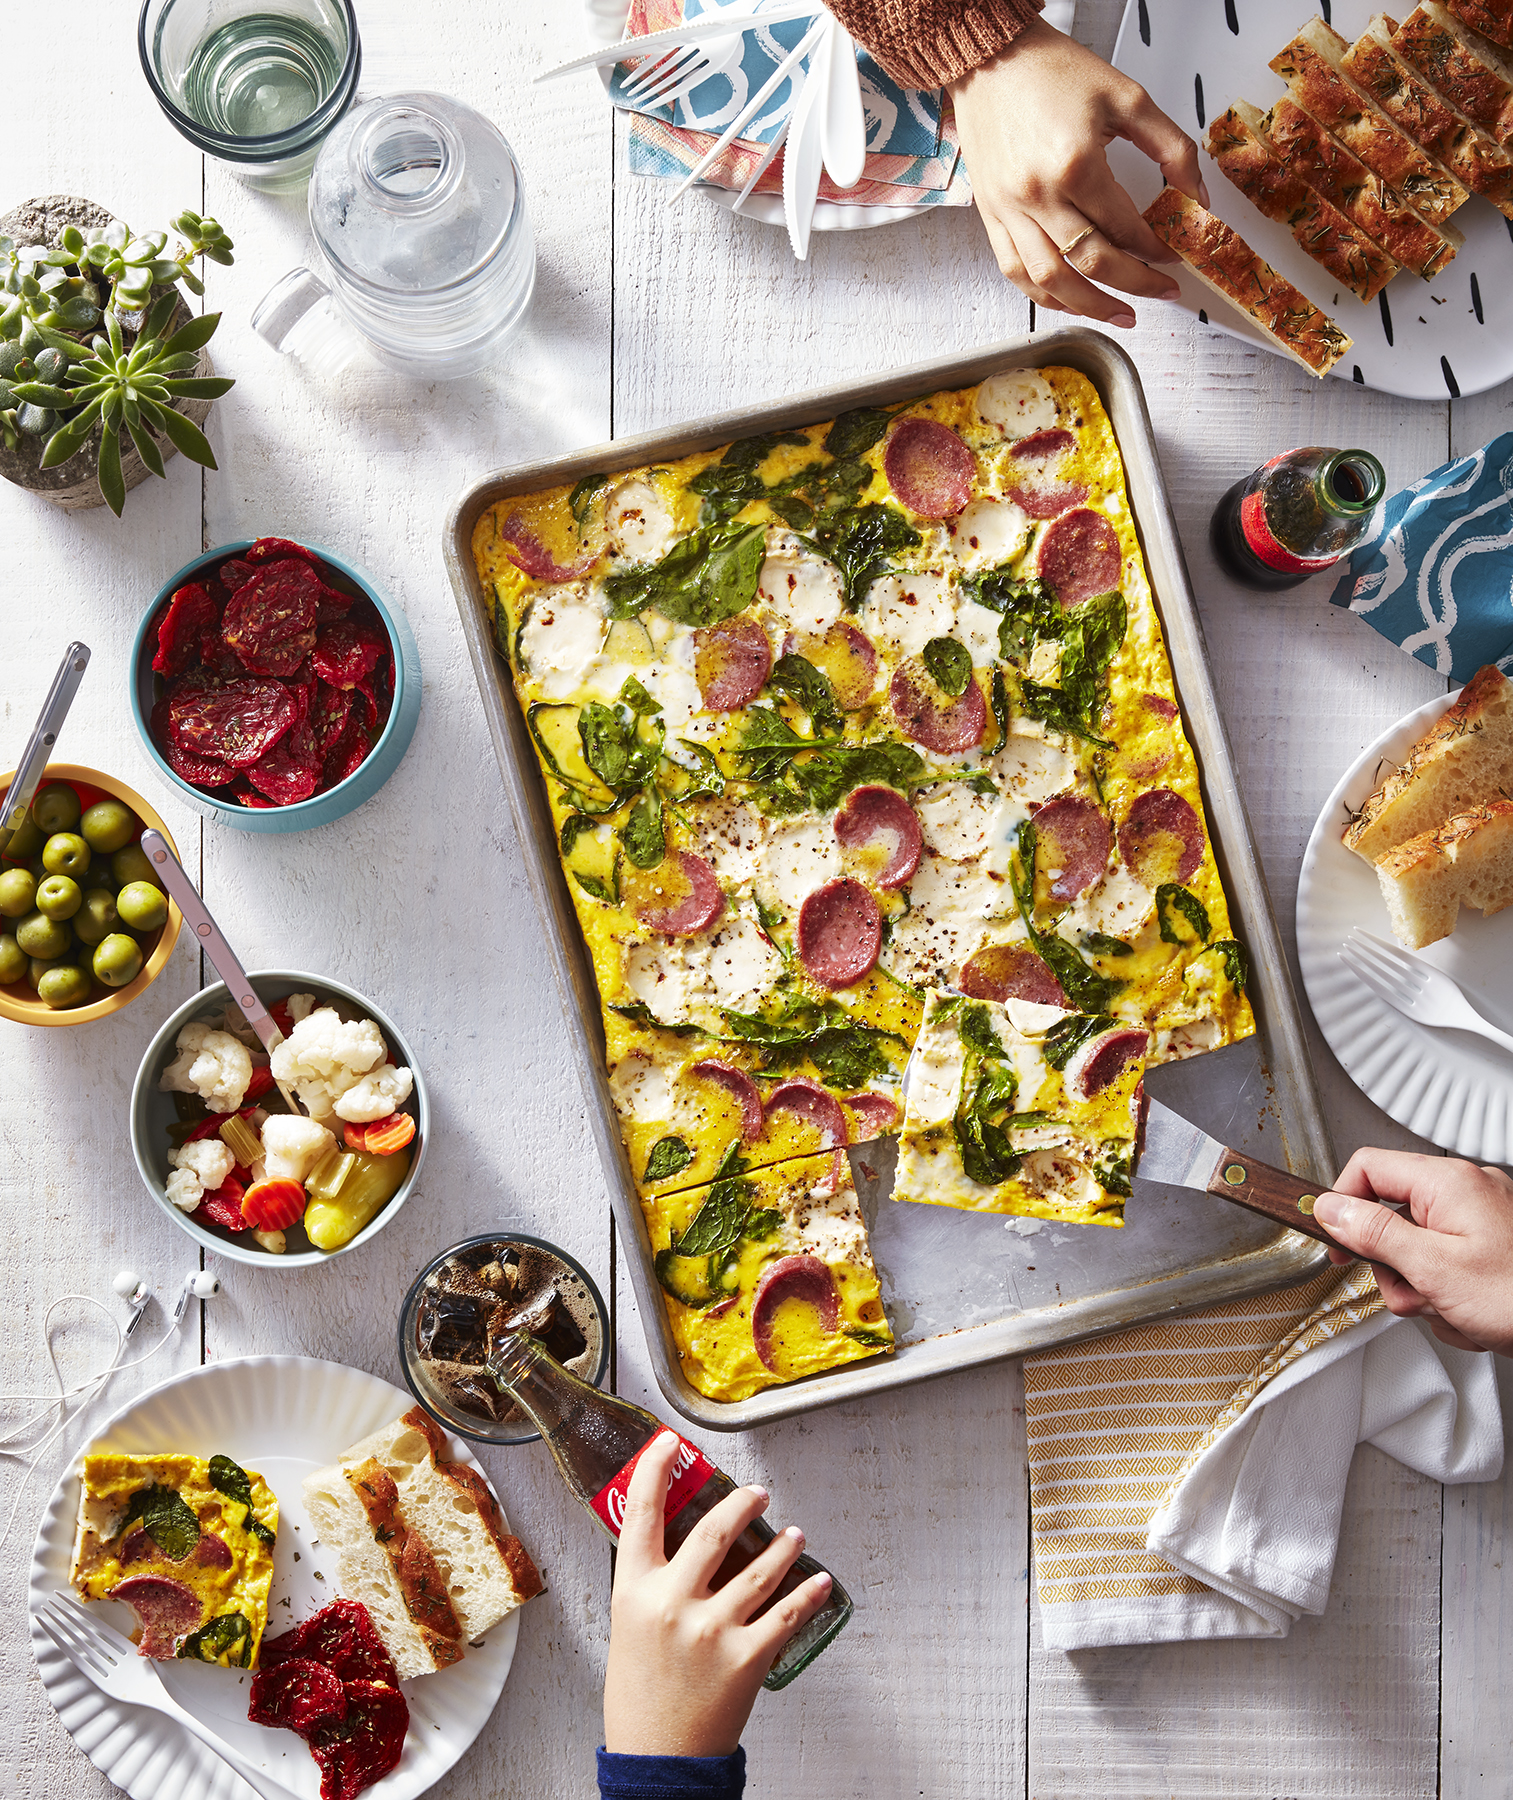 43 Easy Christmas Breakfast Casseroles to Make Ahead or the Morning of